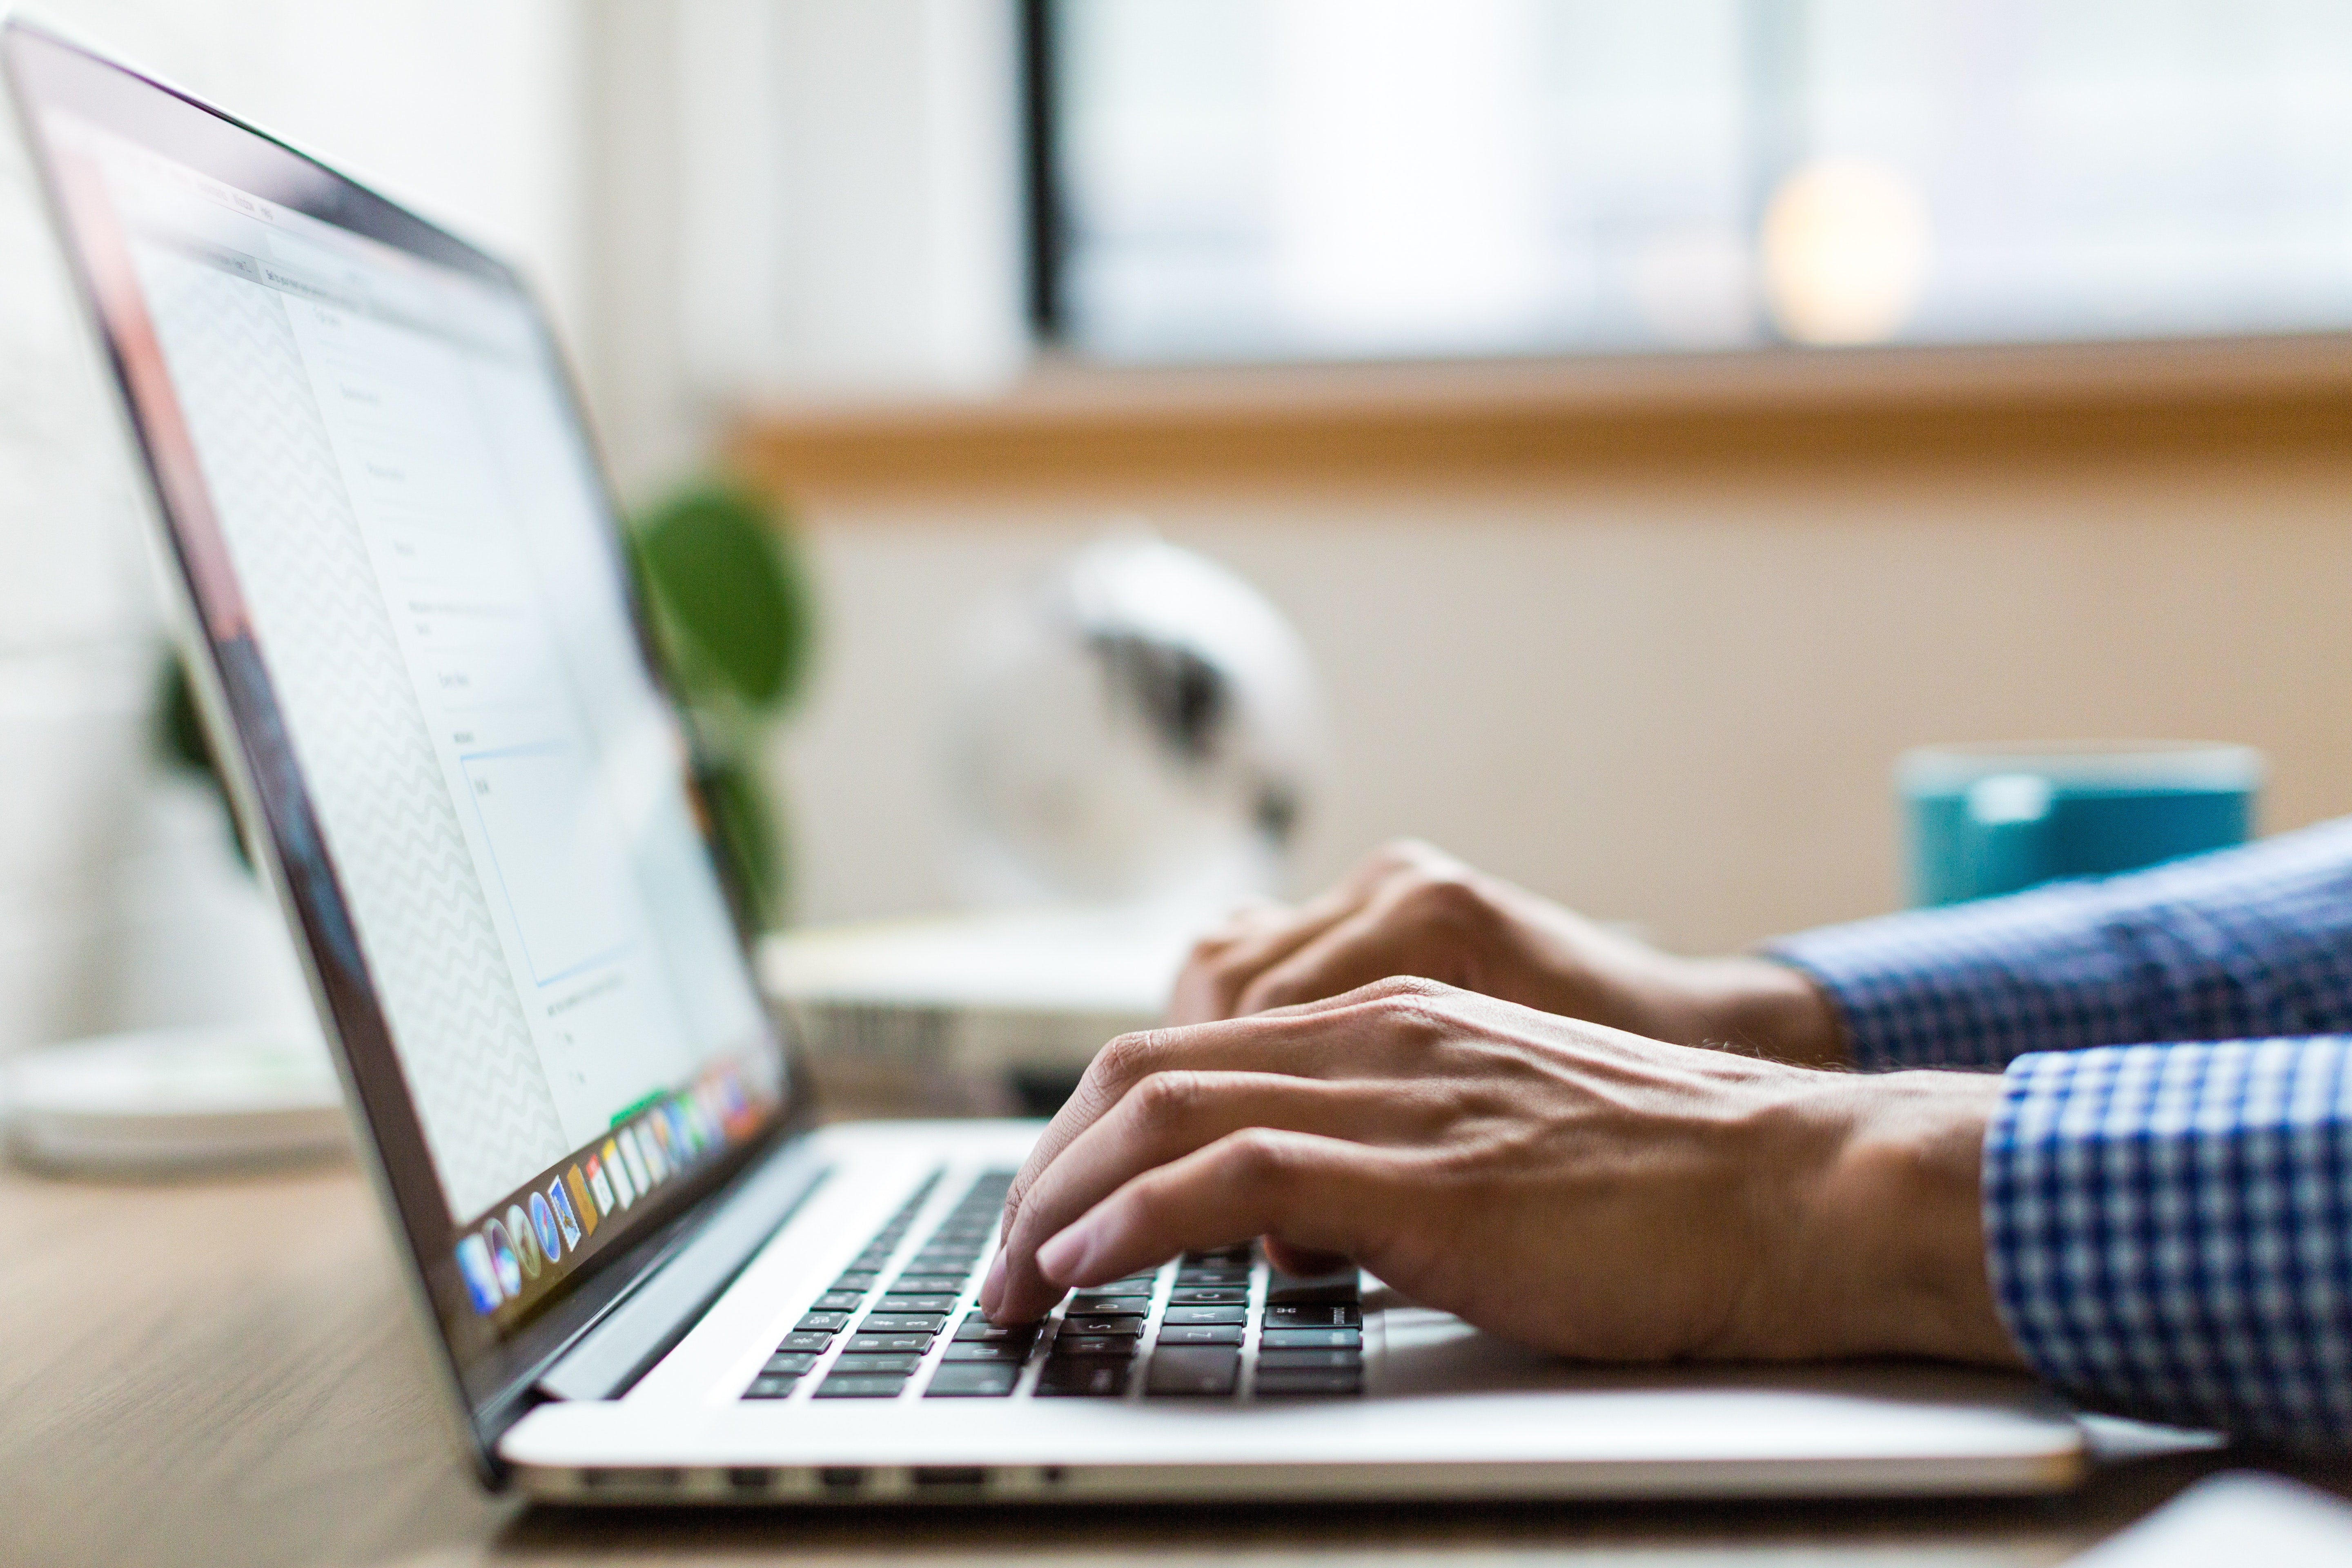 Privacy in 2019: A growing demand for individuals accessing their personal data